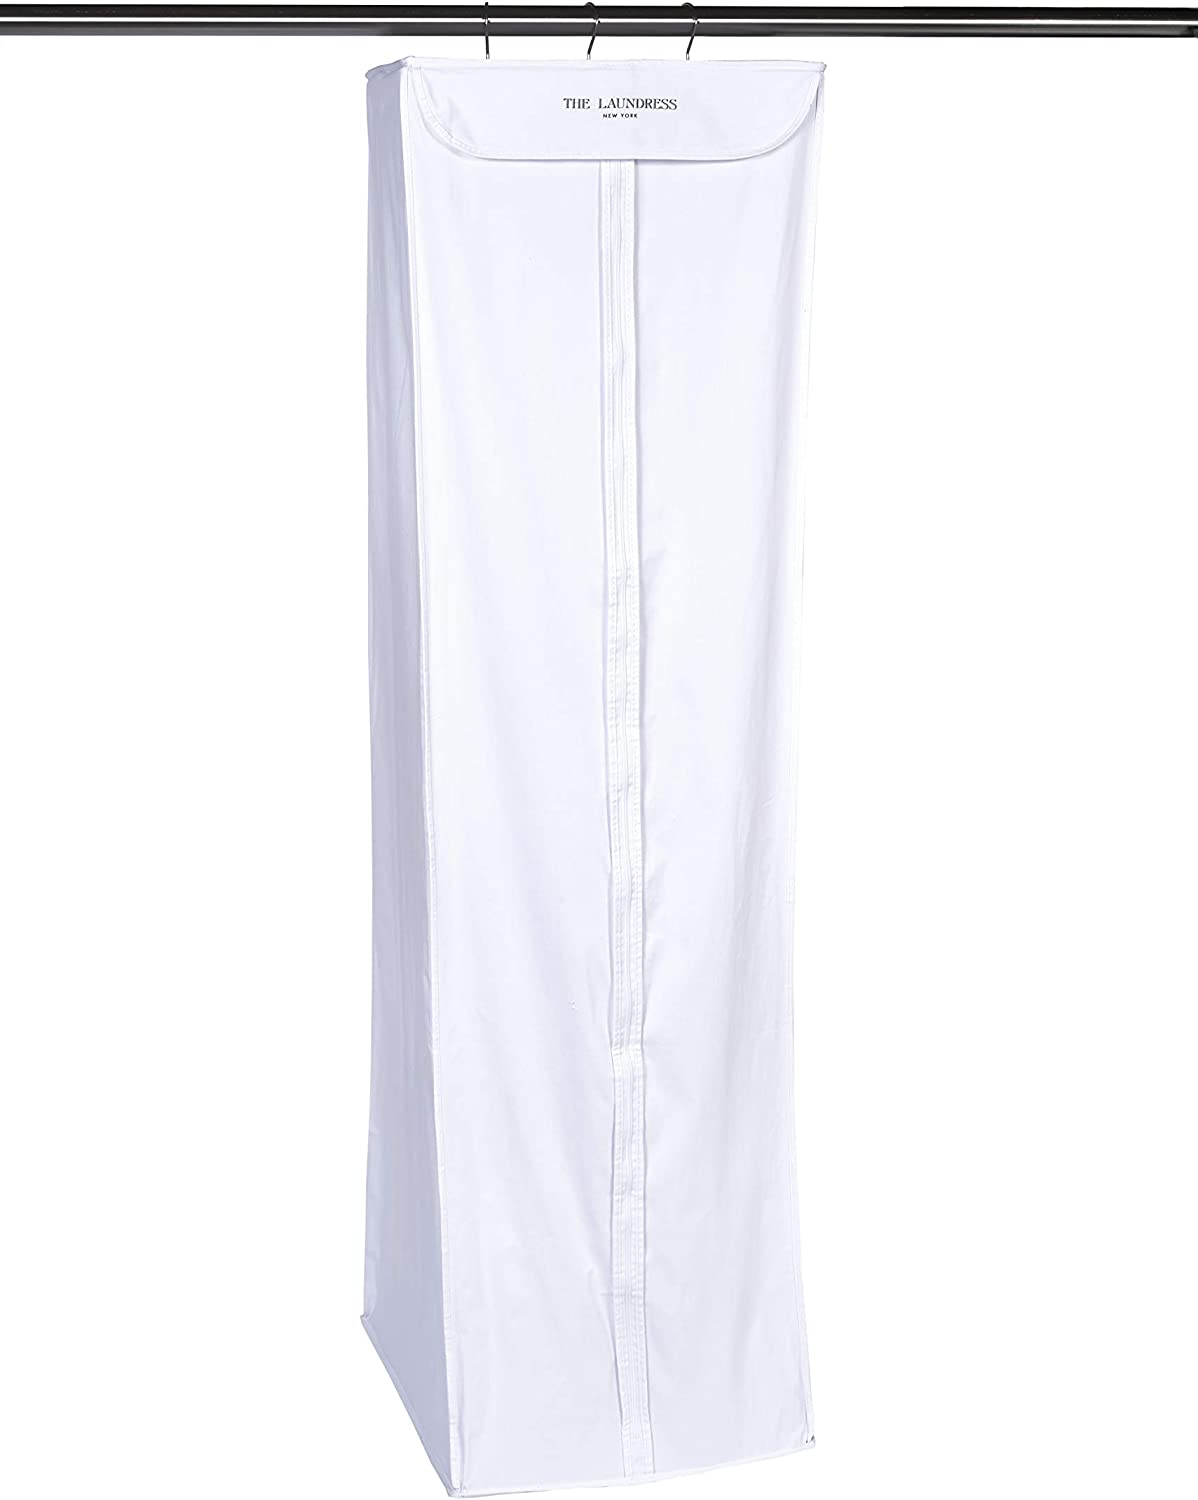 The Laundress - Hanging Coat & Gown Storage Bag, White, Cotton